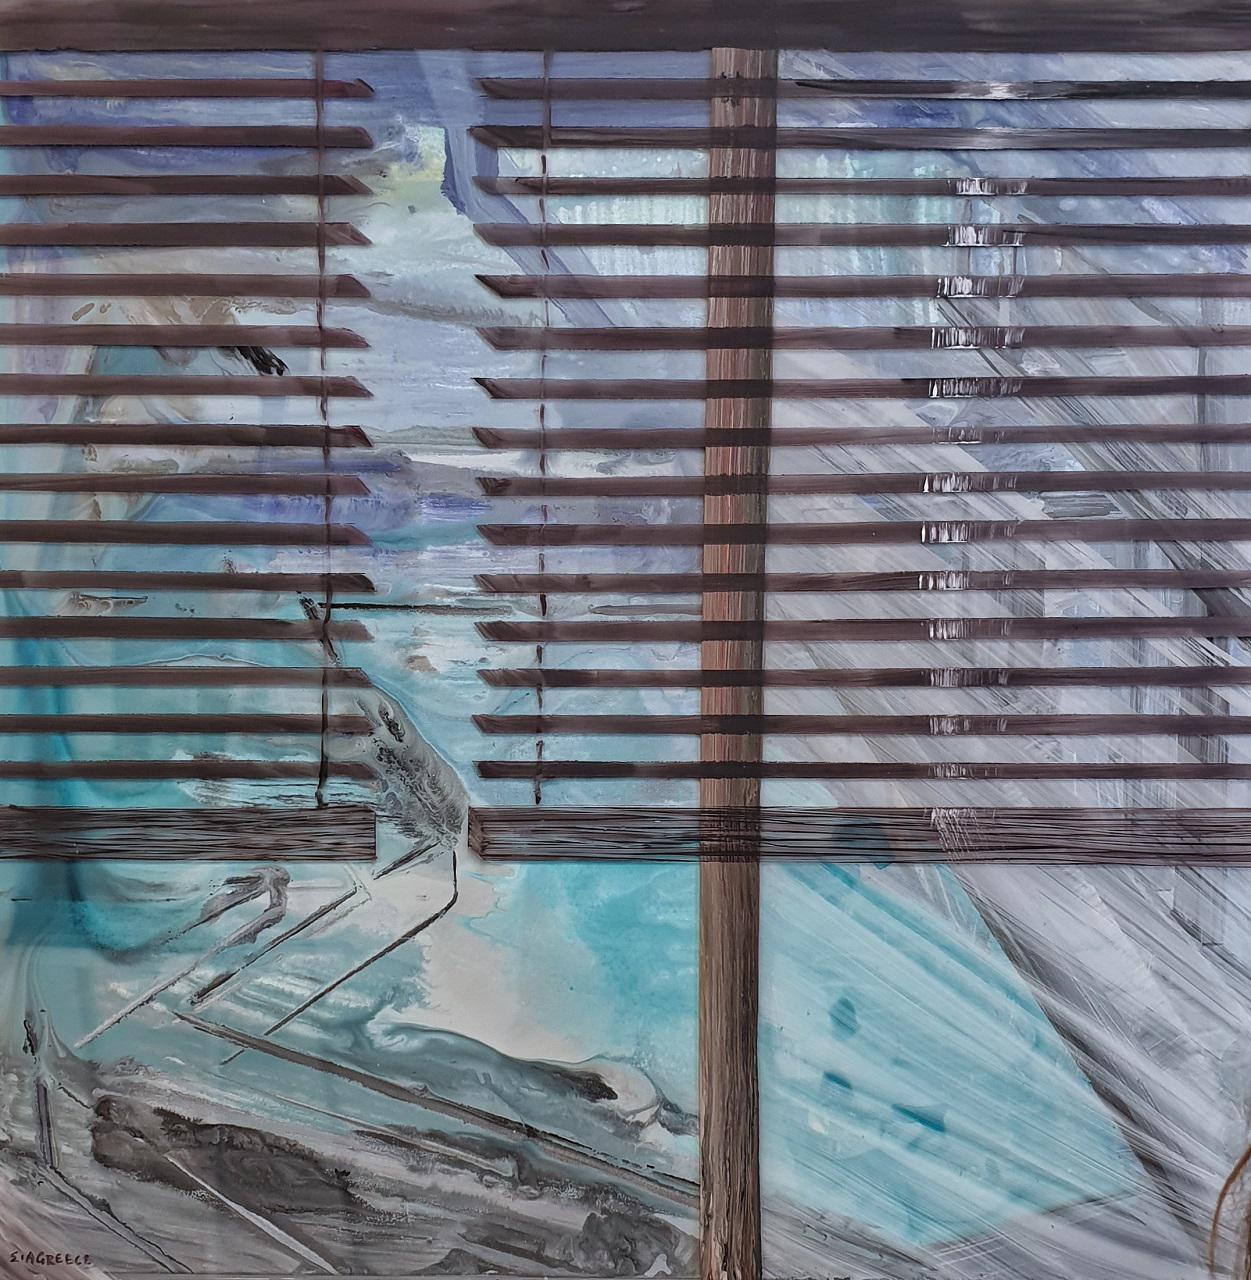 Panagiotis Siagris, Through the blinds, water based varnish color on canvas and plexiglass, 80 x 80 cm, 2015